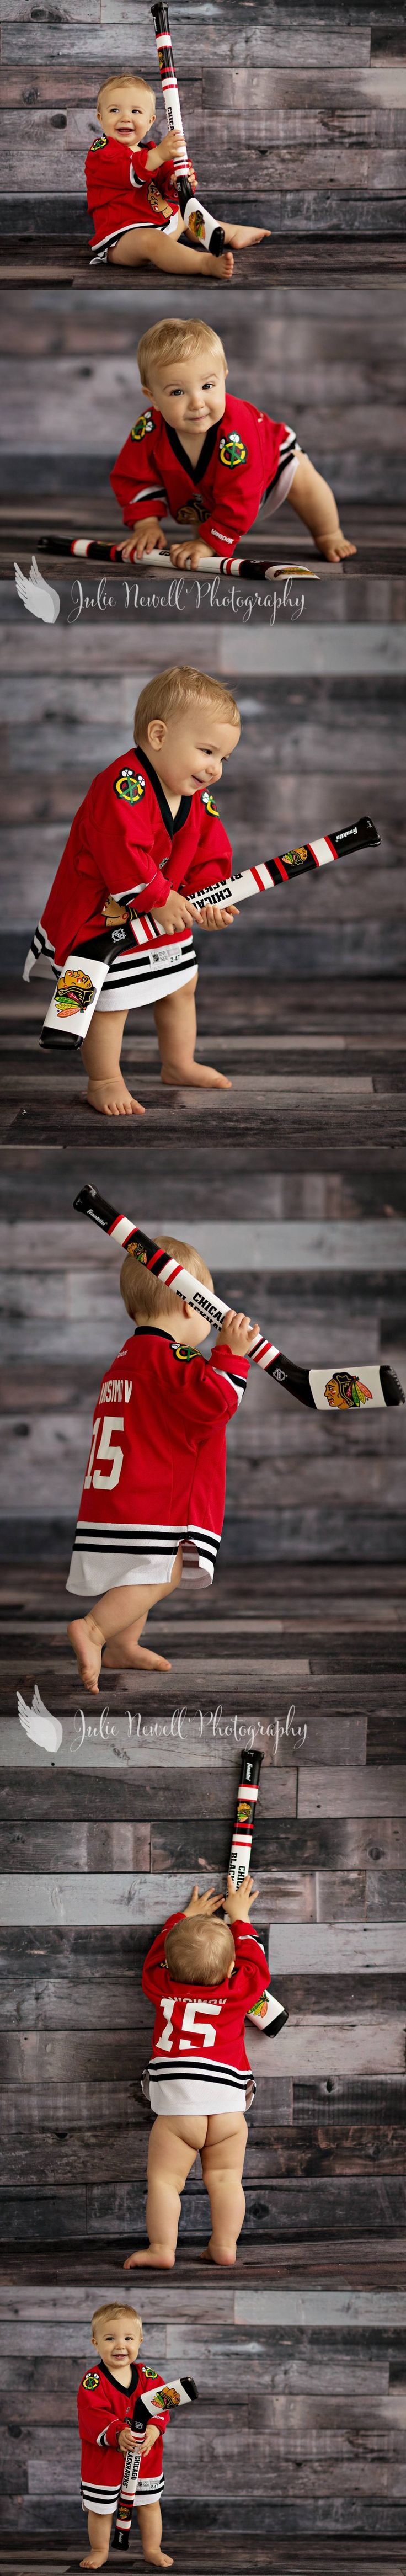 baby photographer, baby photography, chicago baby photographer, chicago baby photography, one year photos, first birthday photographer, first birthday photography, chicago first birthday photographer, chicago first birthday photography, blackhawks baby photographer, chicago blackhawks baby, chicago blackhawks children photographer, hockey baby